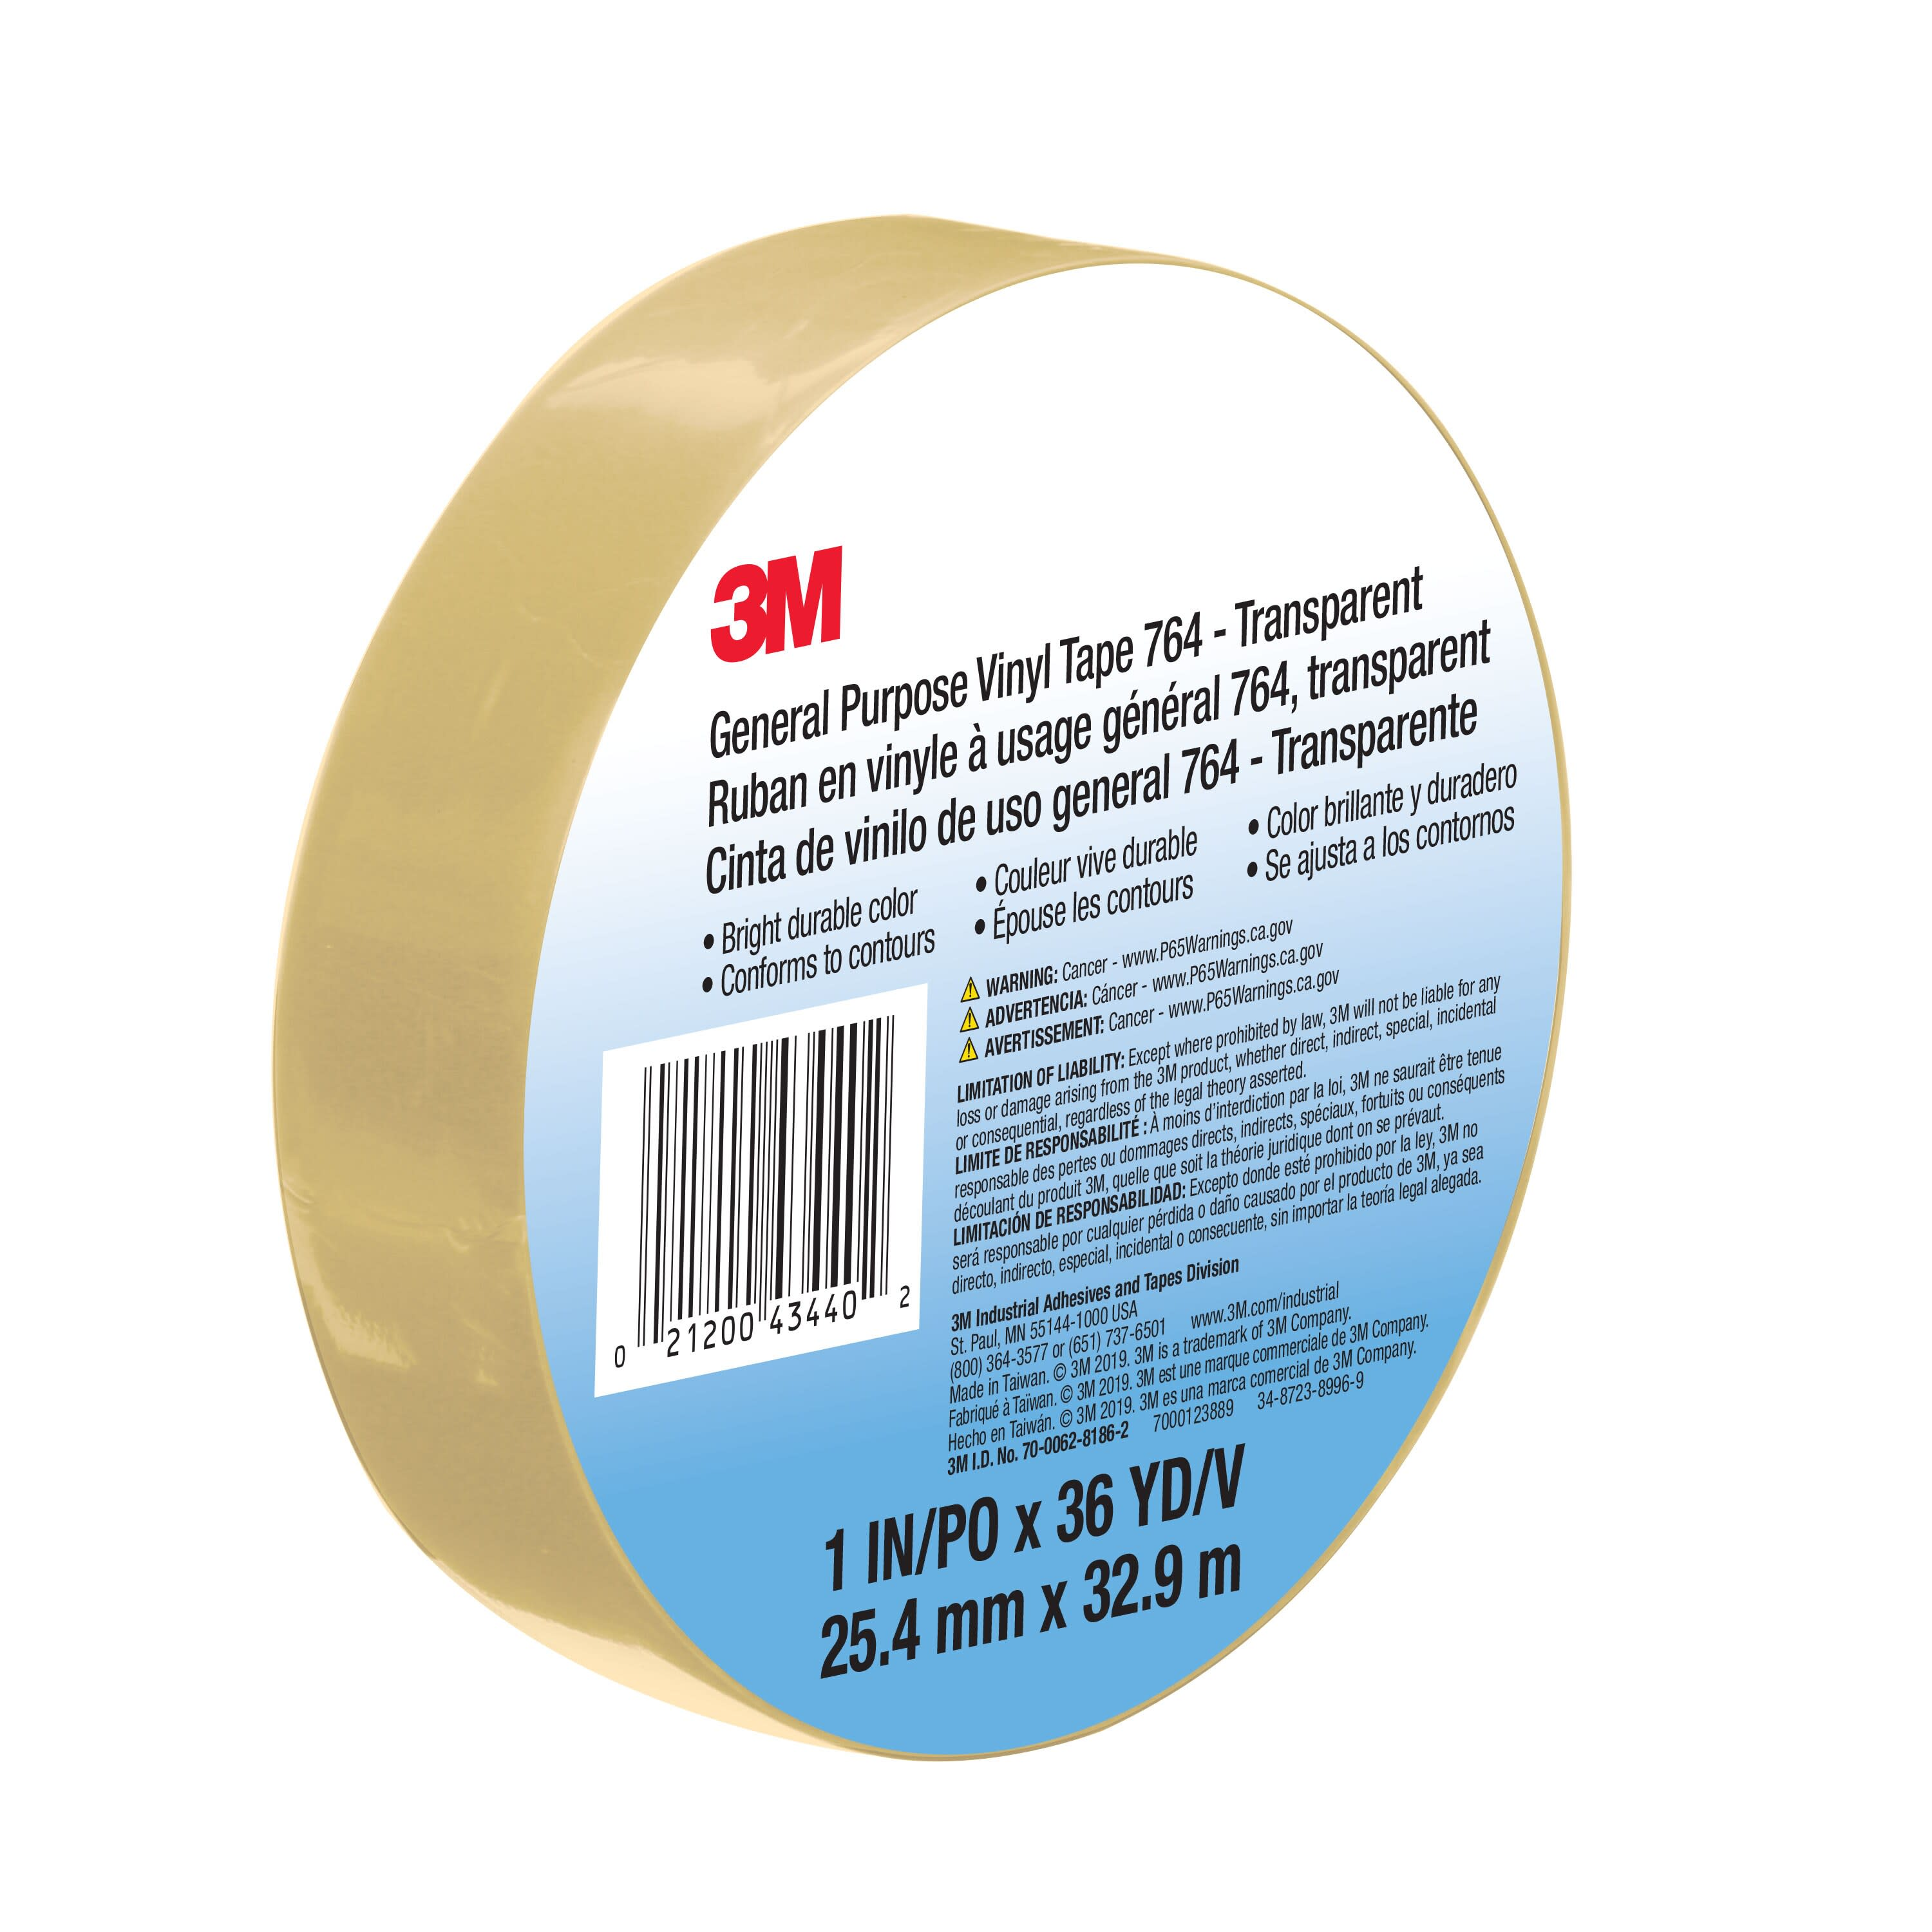 3M™ General Purpose Vinyl Tape 764, Transparent, 1 in x 36 yd, 5 mil, 36 Roll/Case, Individually Wrapped Conveniently Packaged